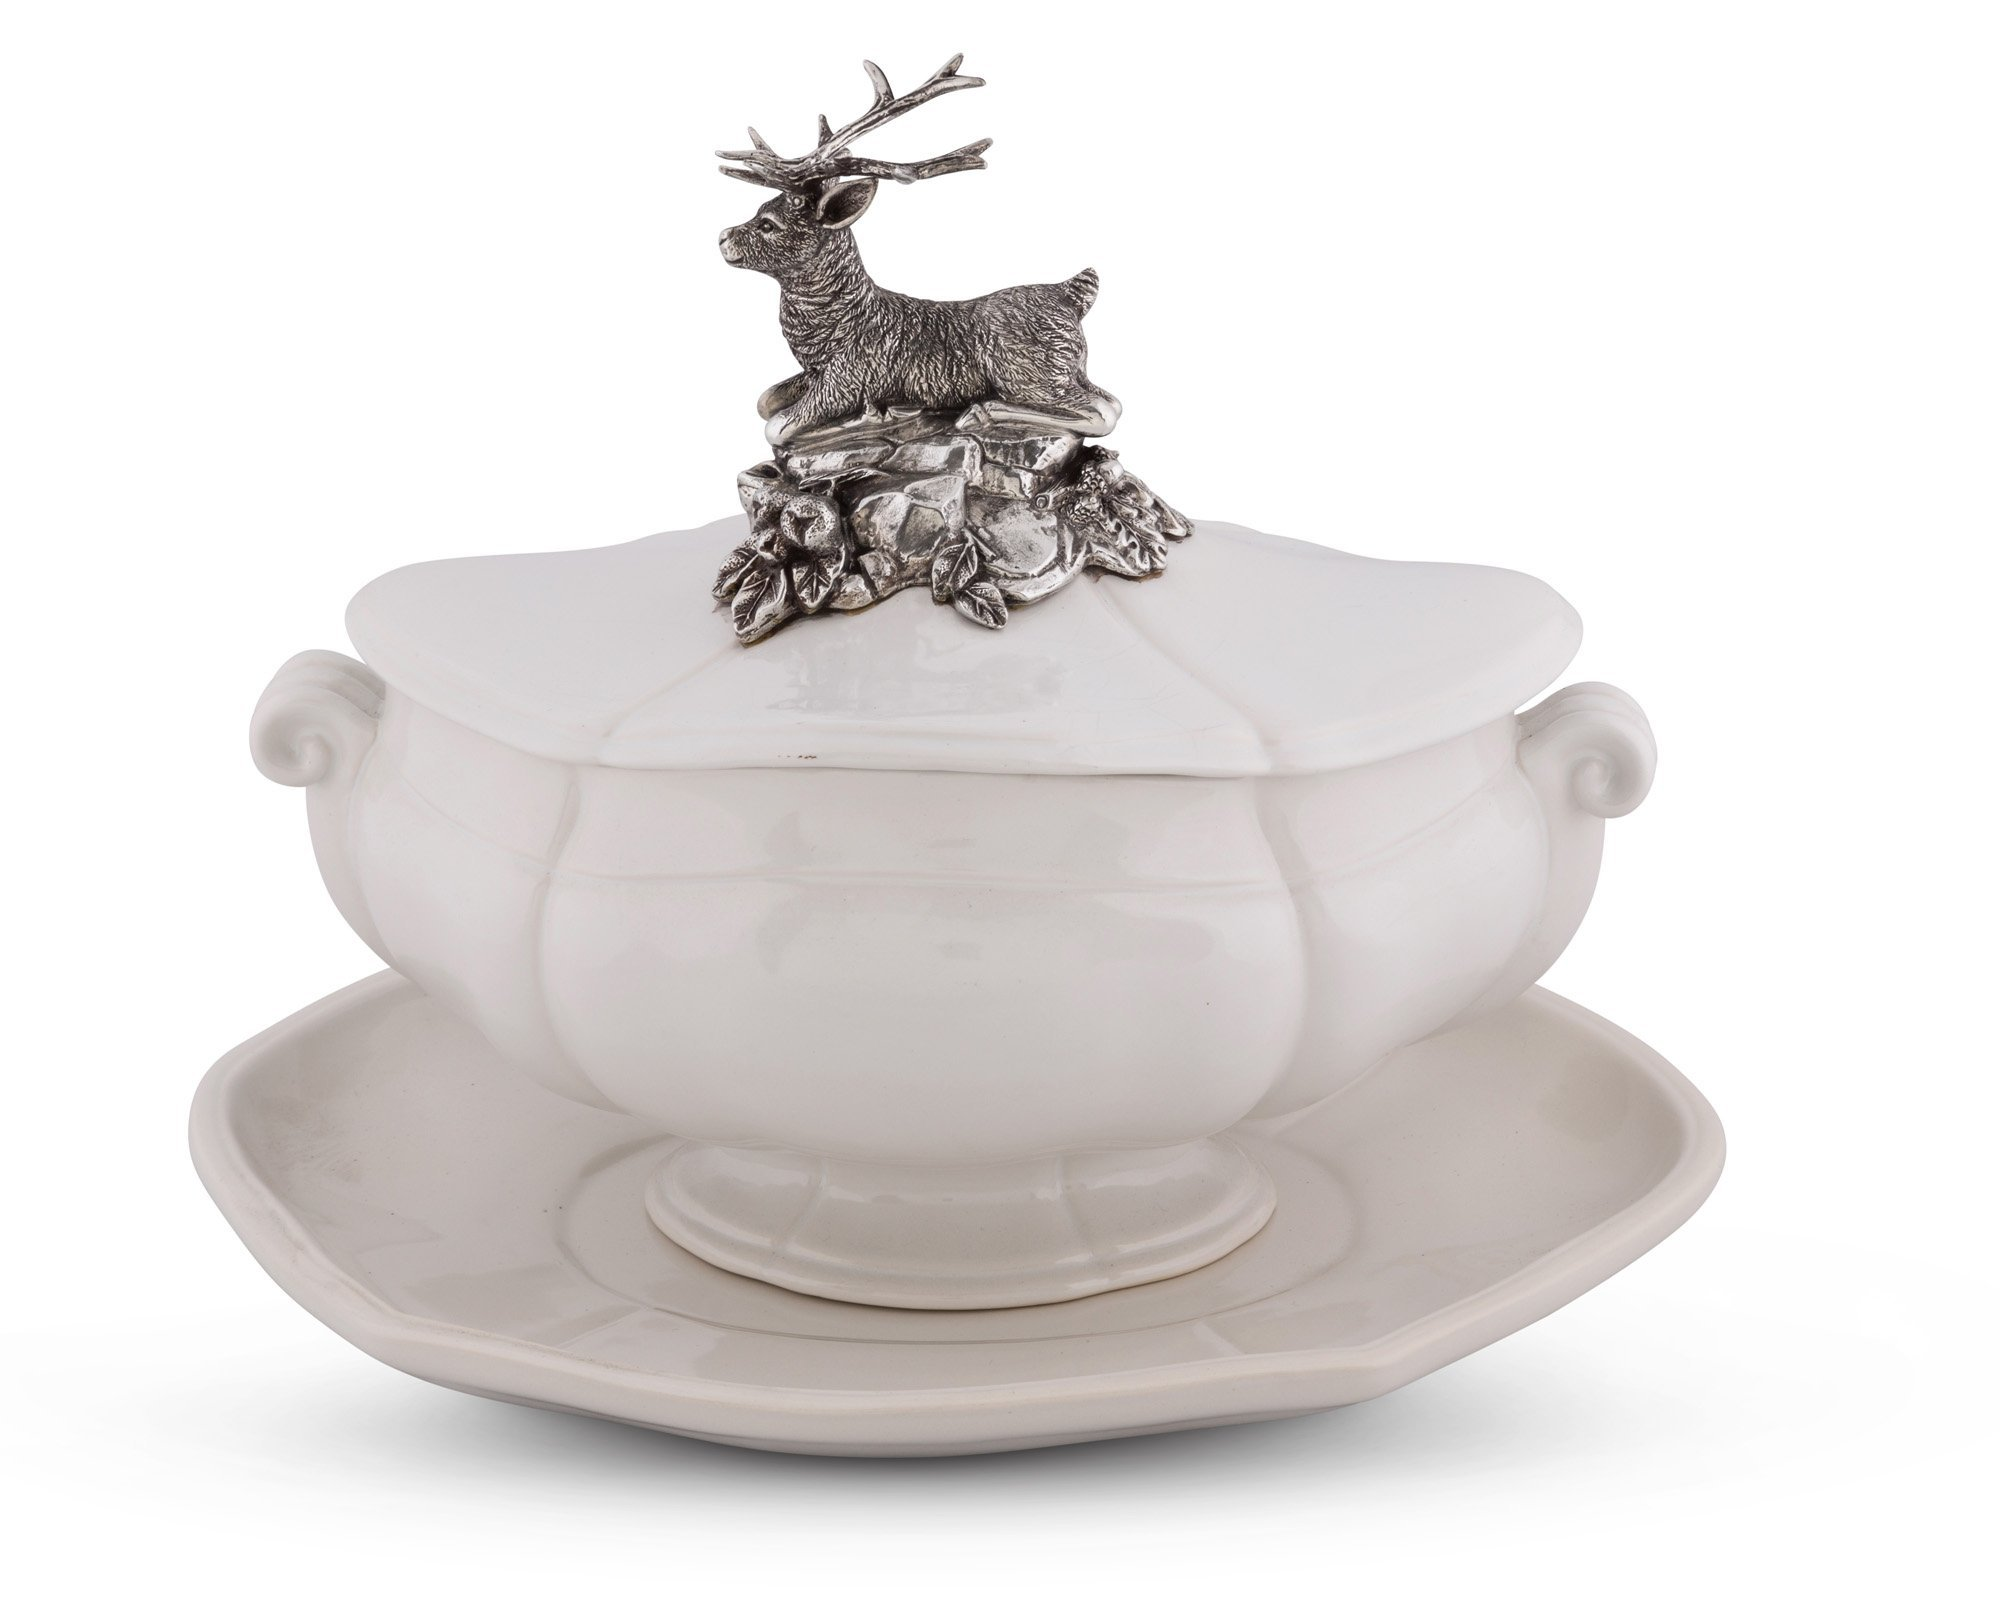 Vagabond House Pewter Metal Stag Stoneware Soup Tureen with Tray 13'' Long x 9'' Wide